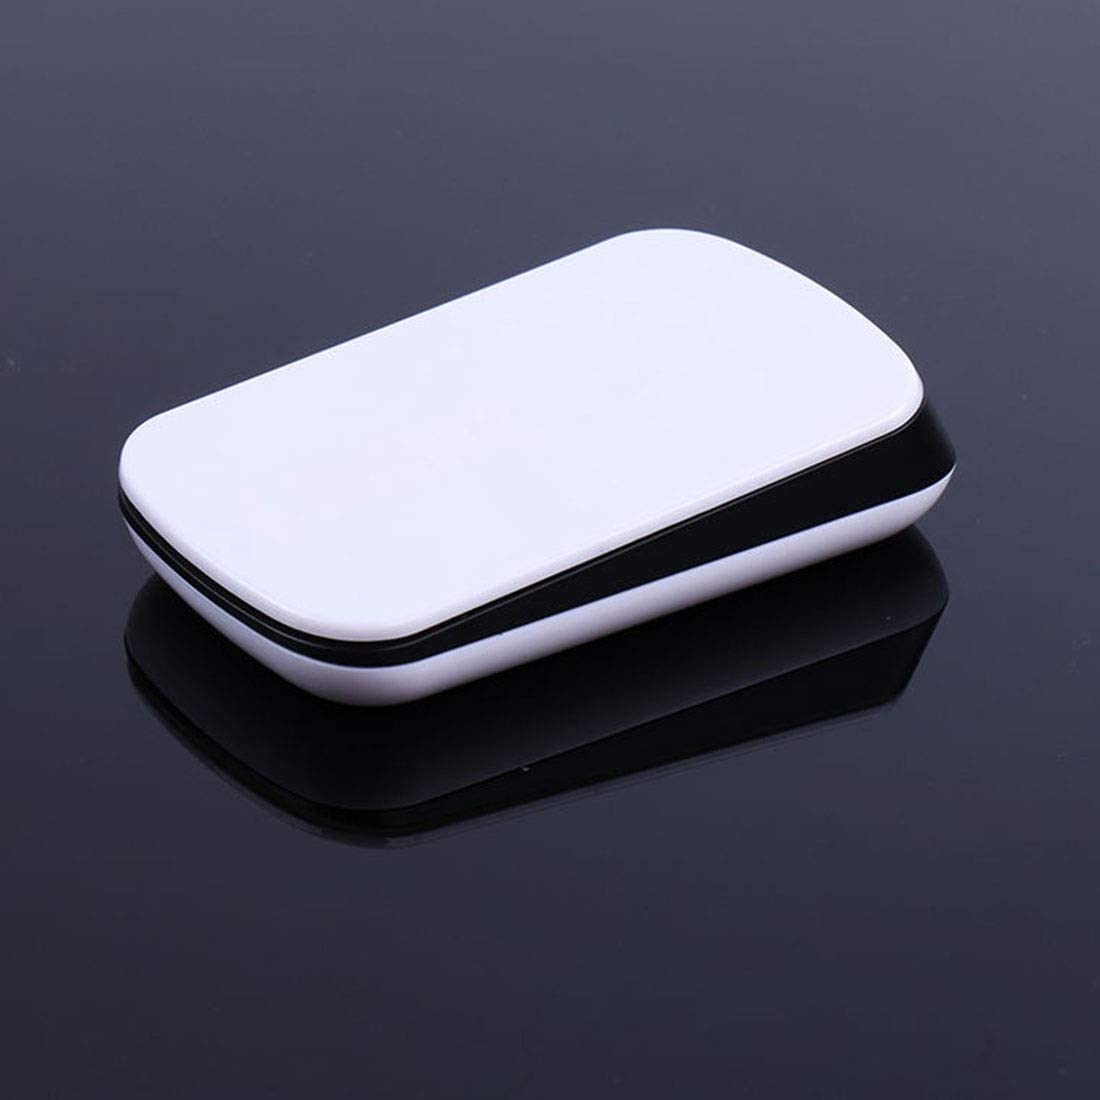 JUNXI LYX TM-825 2.4GHz 1200 DPI Wireless Touch Scroll Optical Mouse for Mac Desktop Laptop Easy to Install White